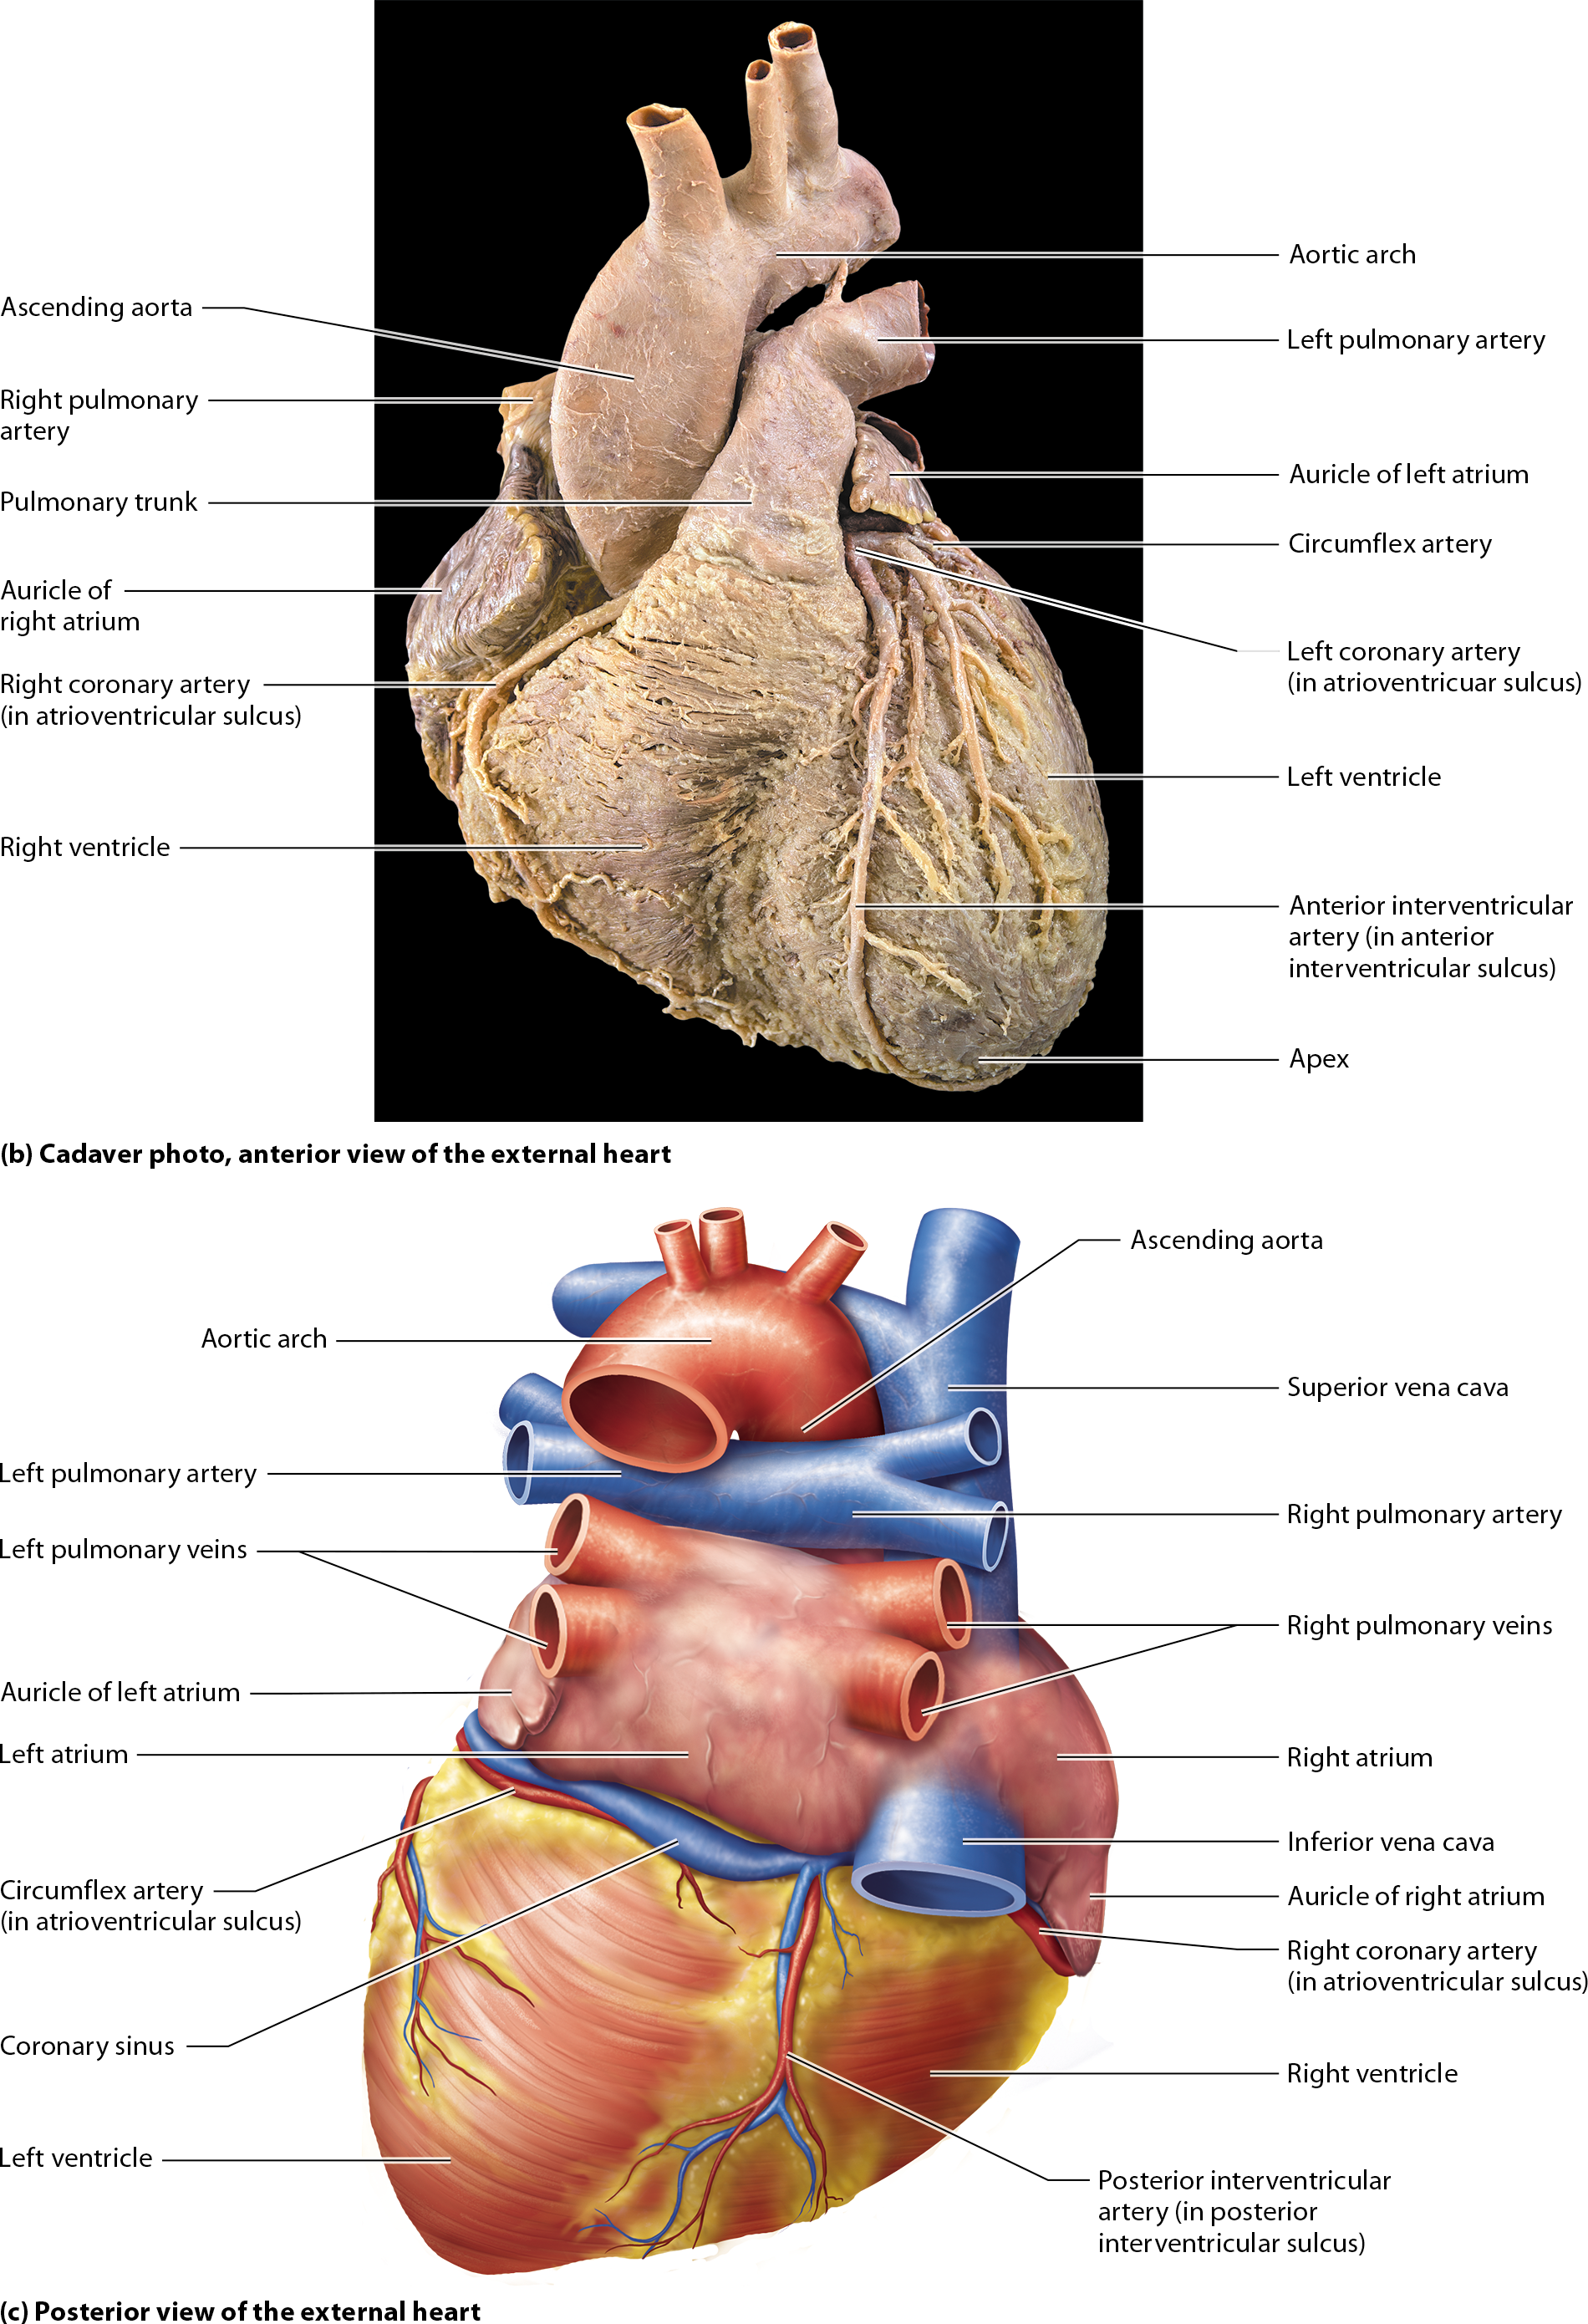 Module 17.2 Heart Anatomy and Blood Flow Pathway: Human Anatomy and ...